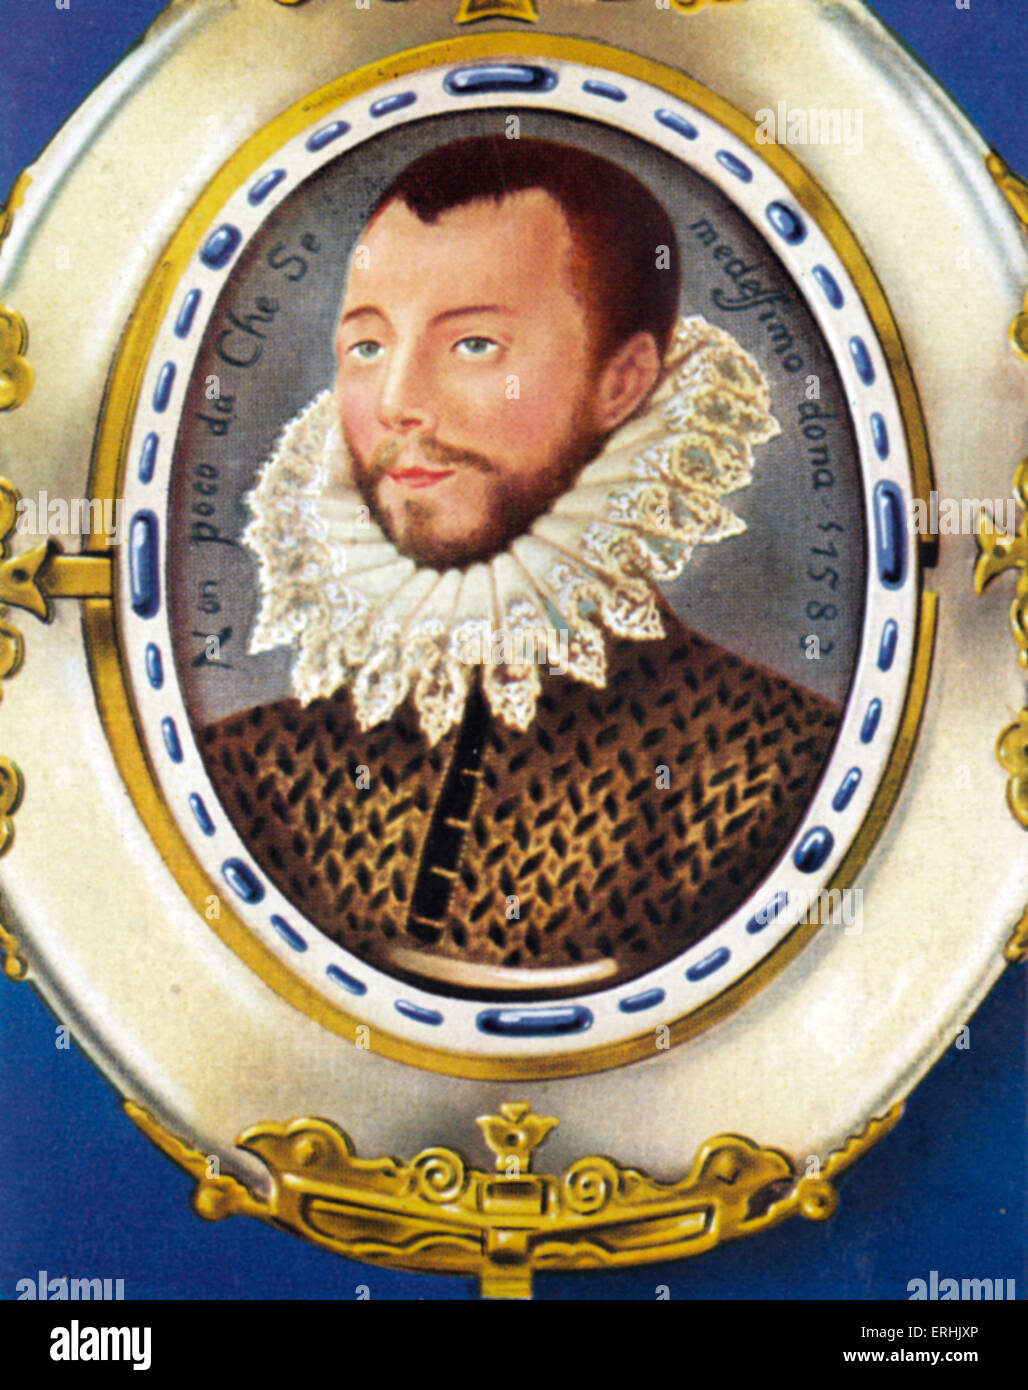 Phillip II, King of Spain. Portrait. After a minature by Isaac Oliver. He was King of Spain from 1556- 1598, King - Stock Image